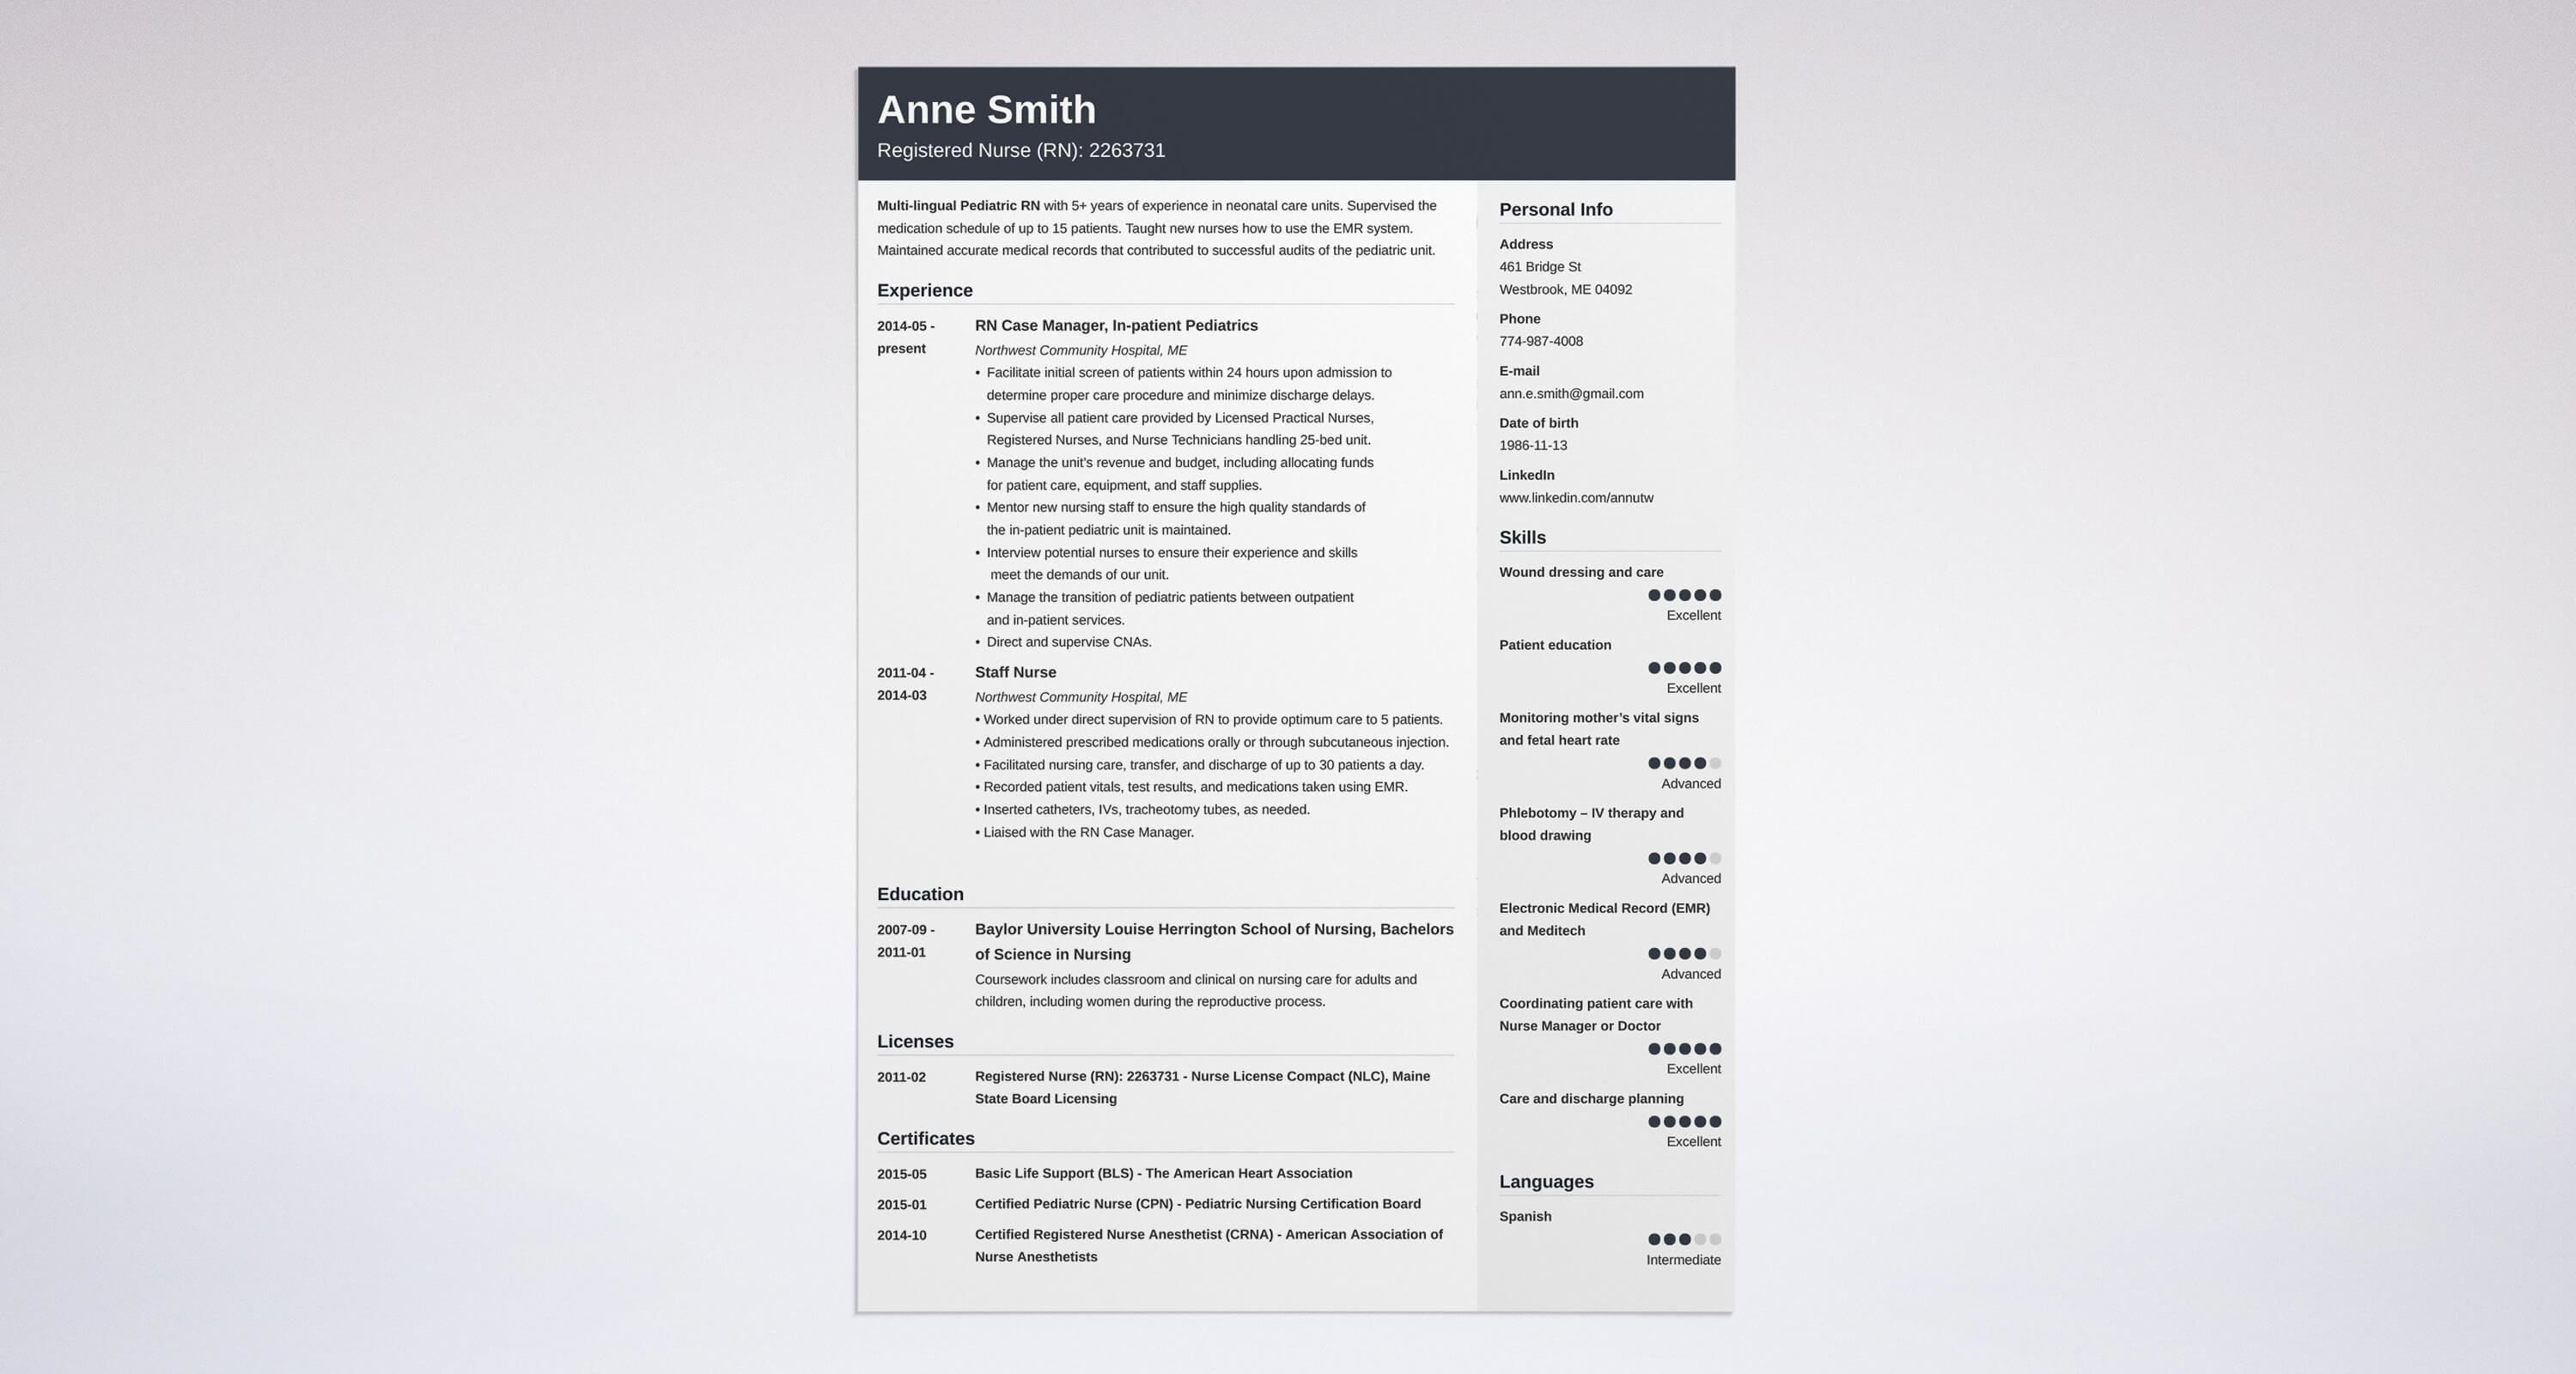 Nursing Resume: Sample & Complete Guide [20+ Examples]